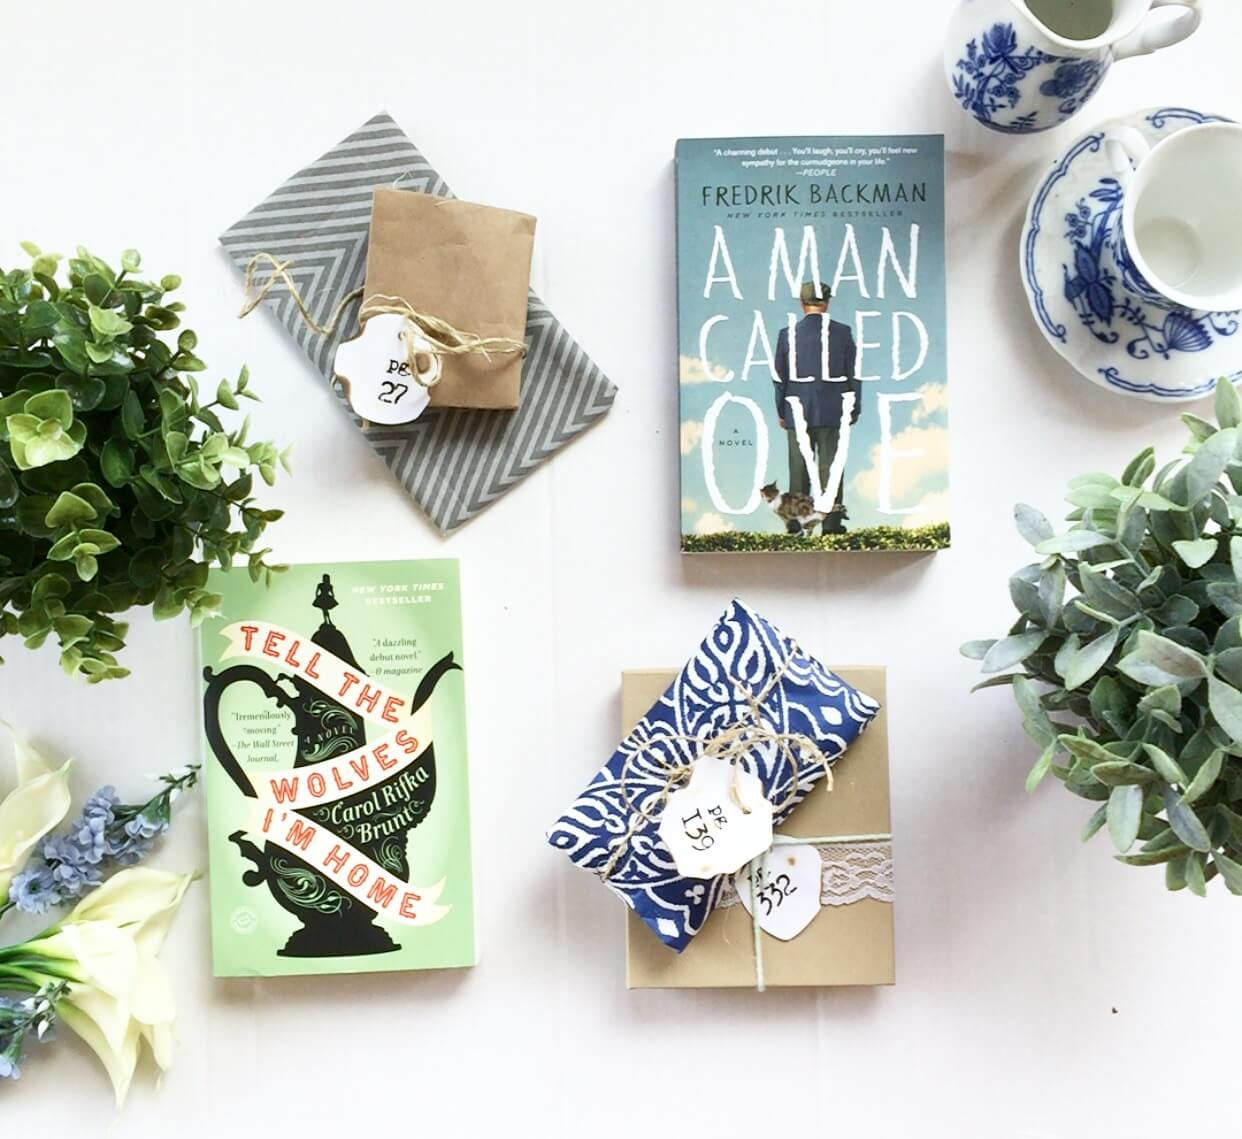 Once Upon a Book Club Black Friday 2017 Coupon: Save 20% off your first box!